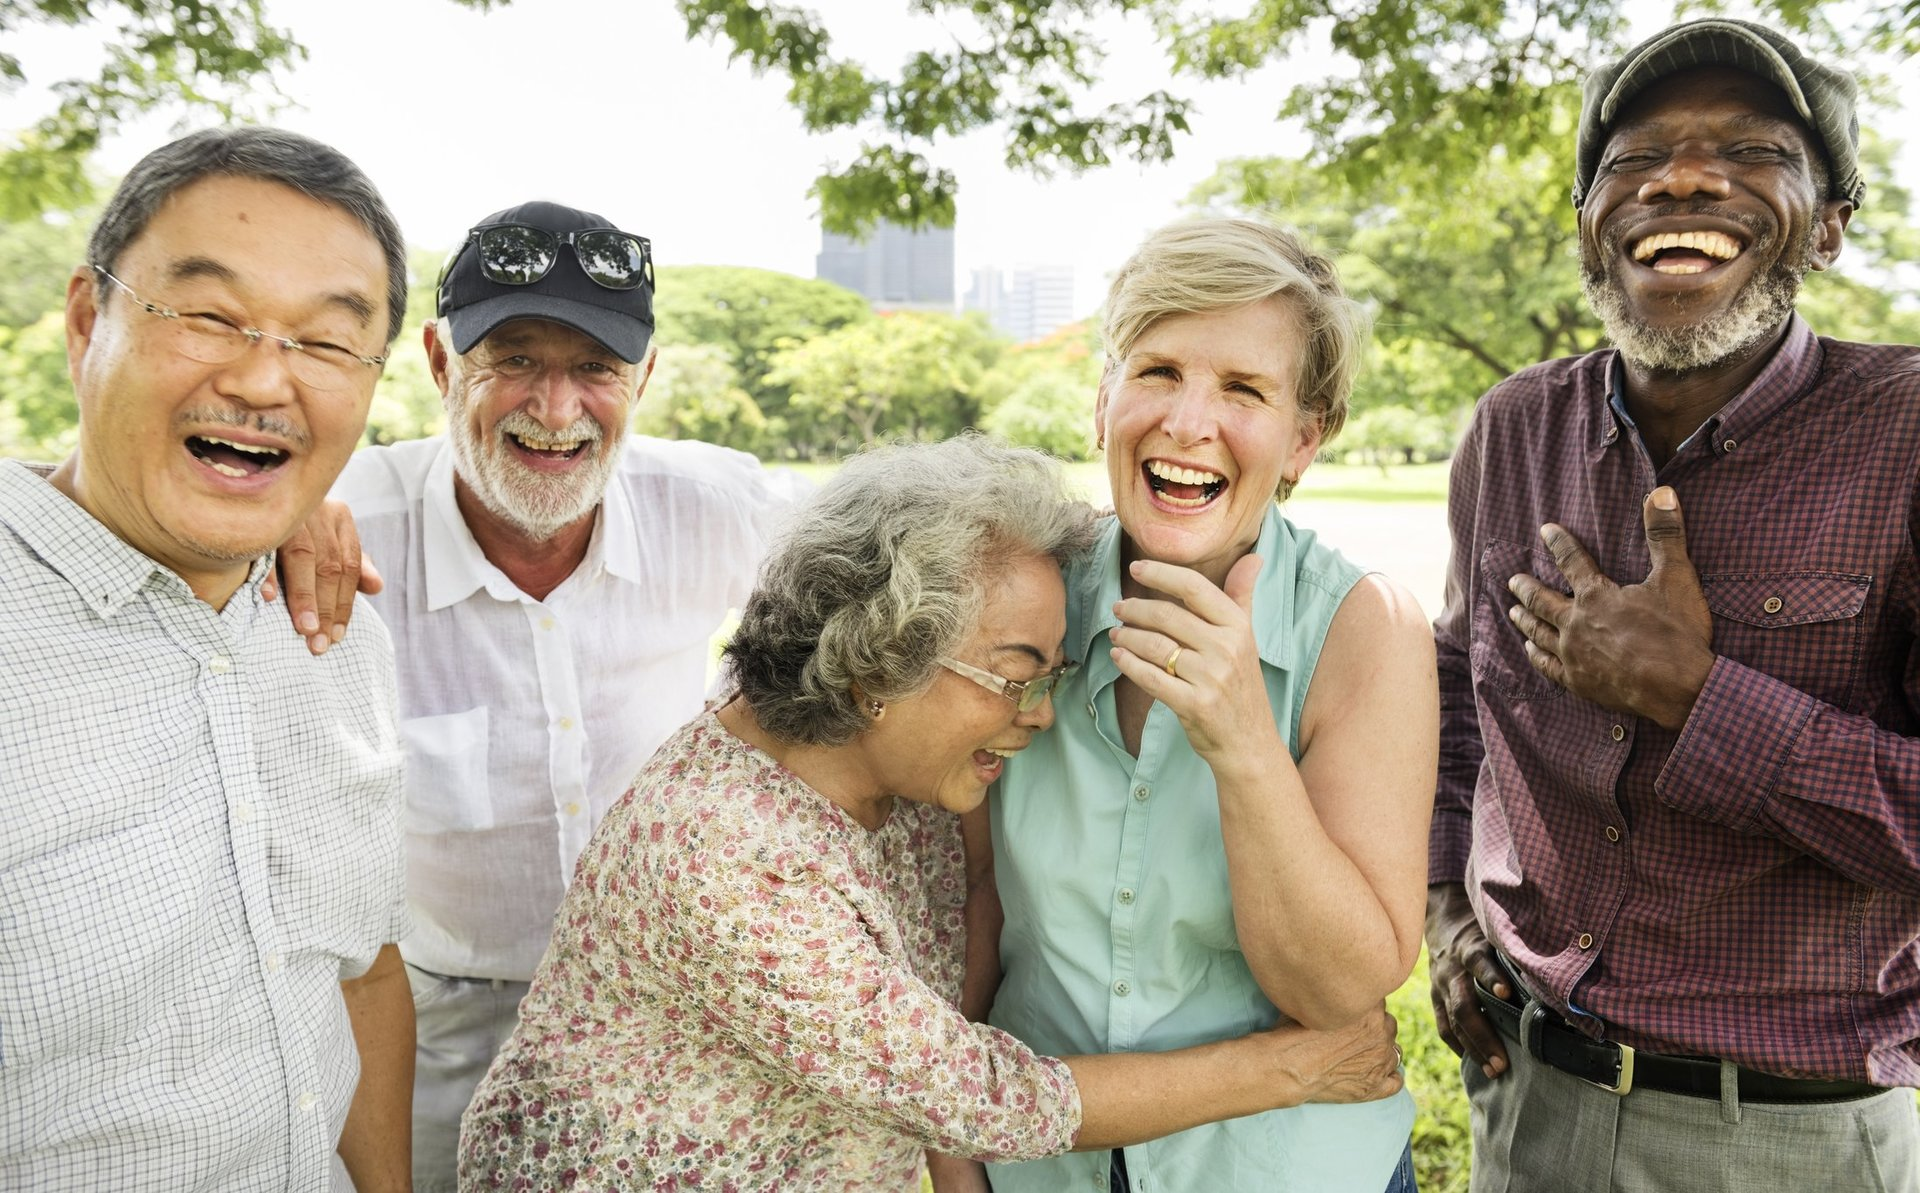 Happy people laughing